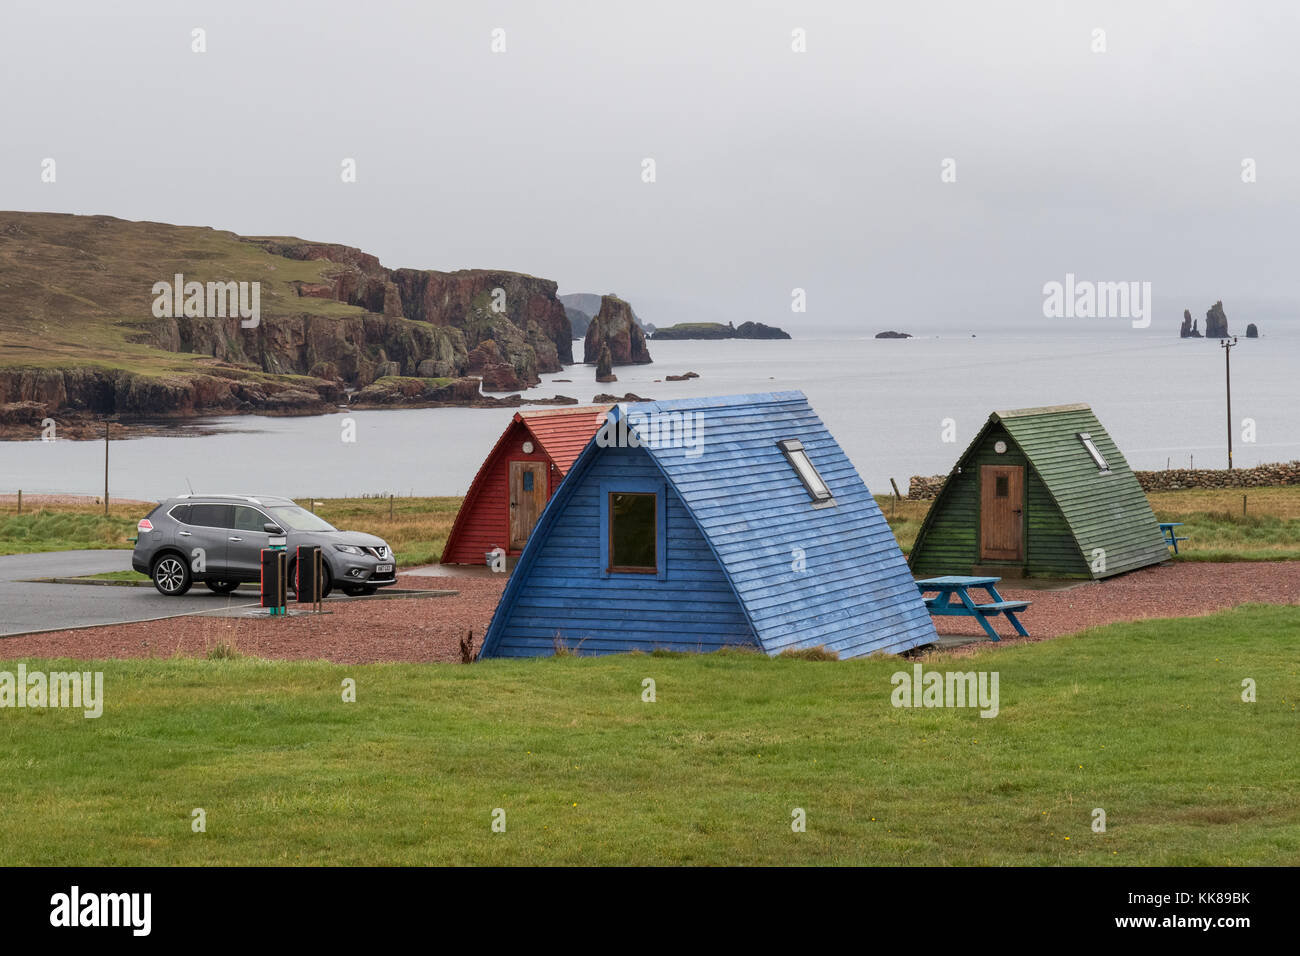 Wooden wigwams overlooking Braewick Bay at Braewick cafe campsite, Eshaness, Shetland, Scotland - Stock Image